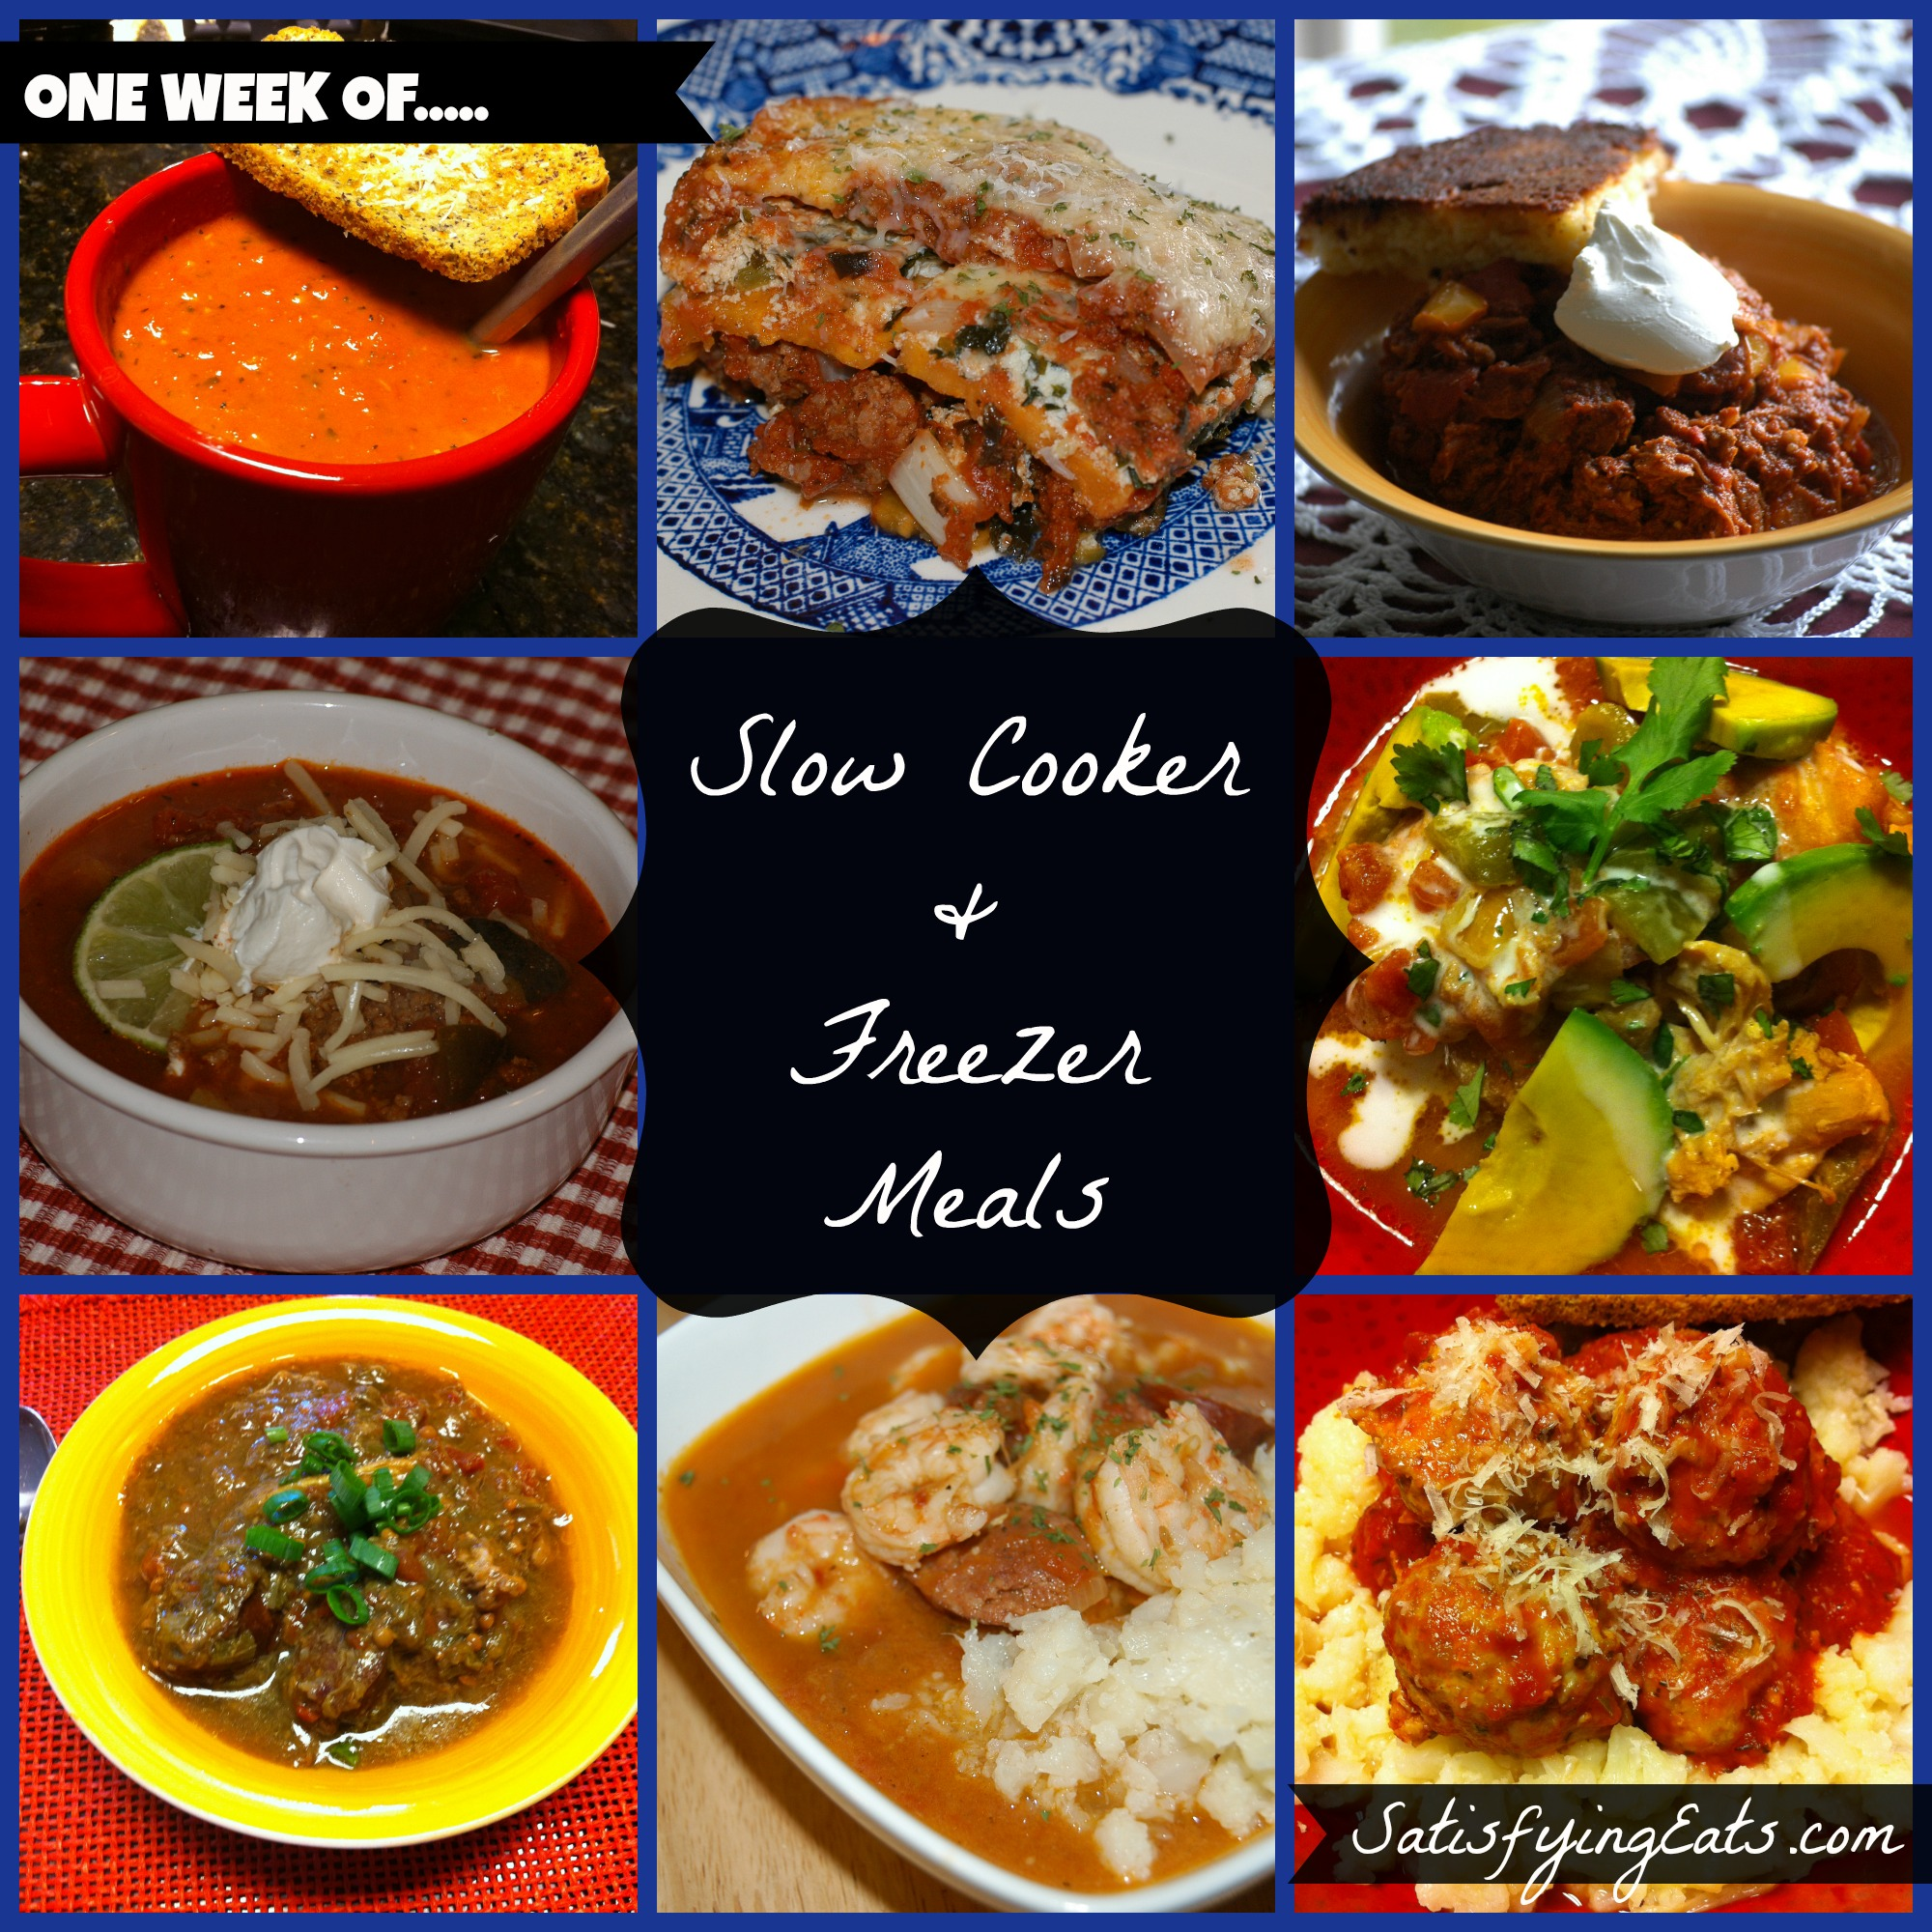 Slow Cooker Dinners: 40 Slow Cooker & Freezer Meals